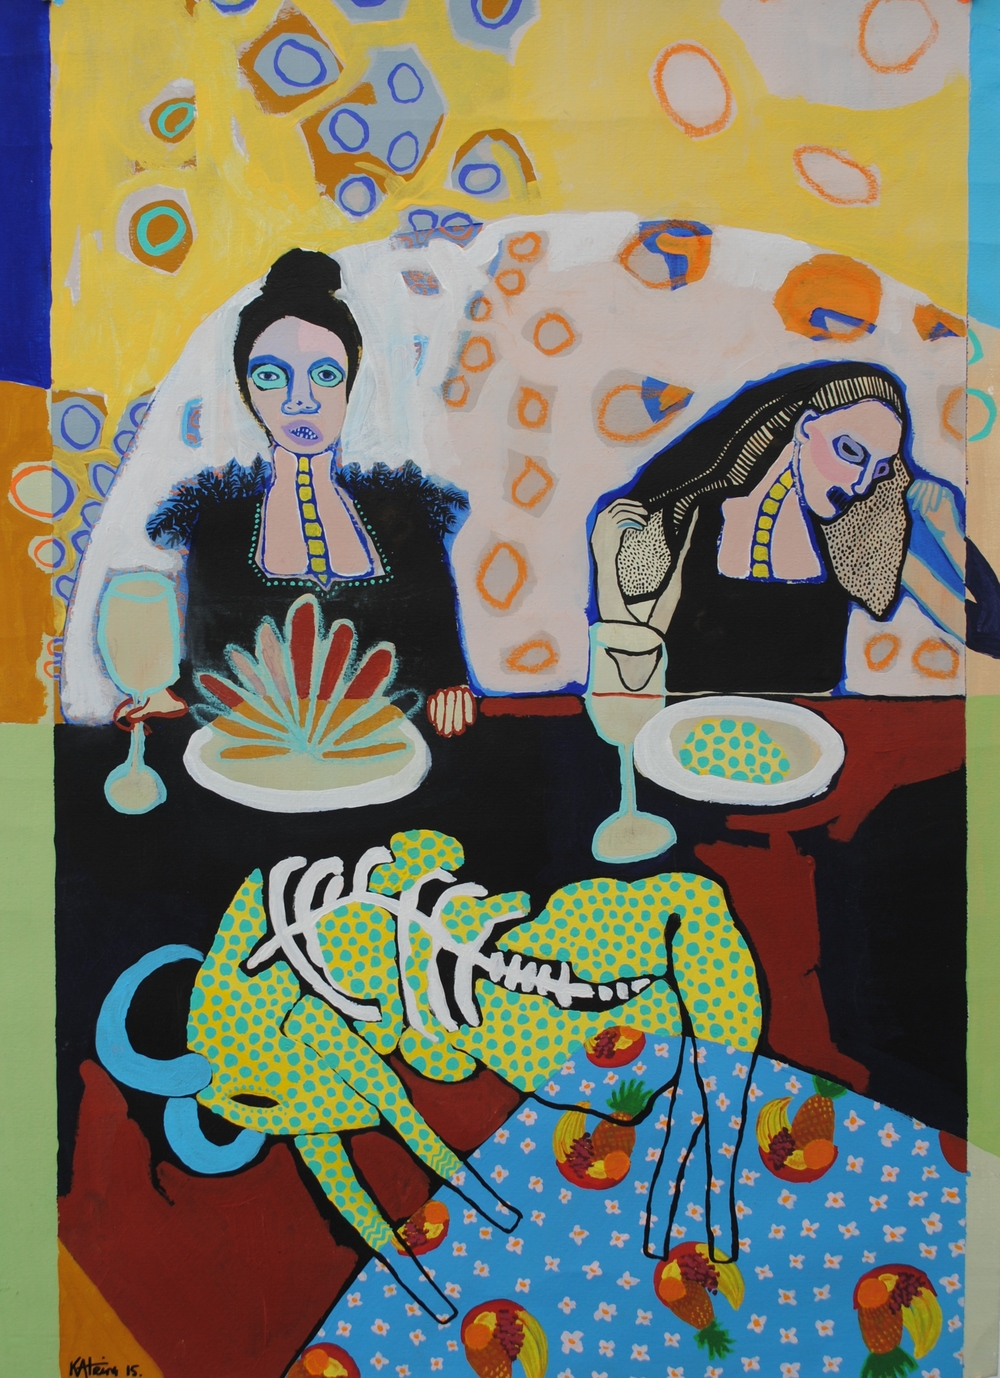 Oaxaca (at the dinner table)